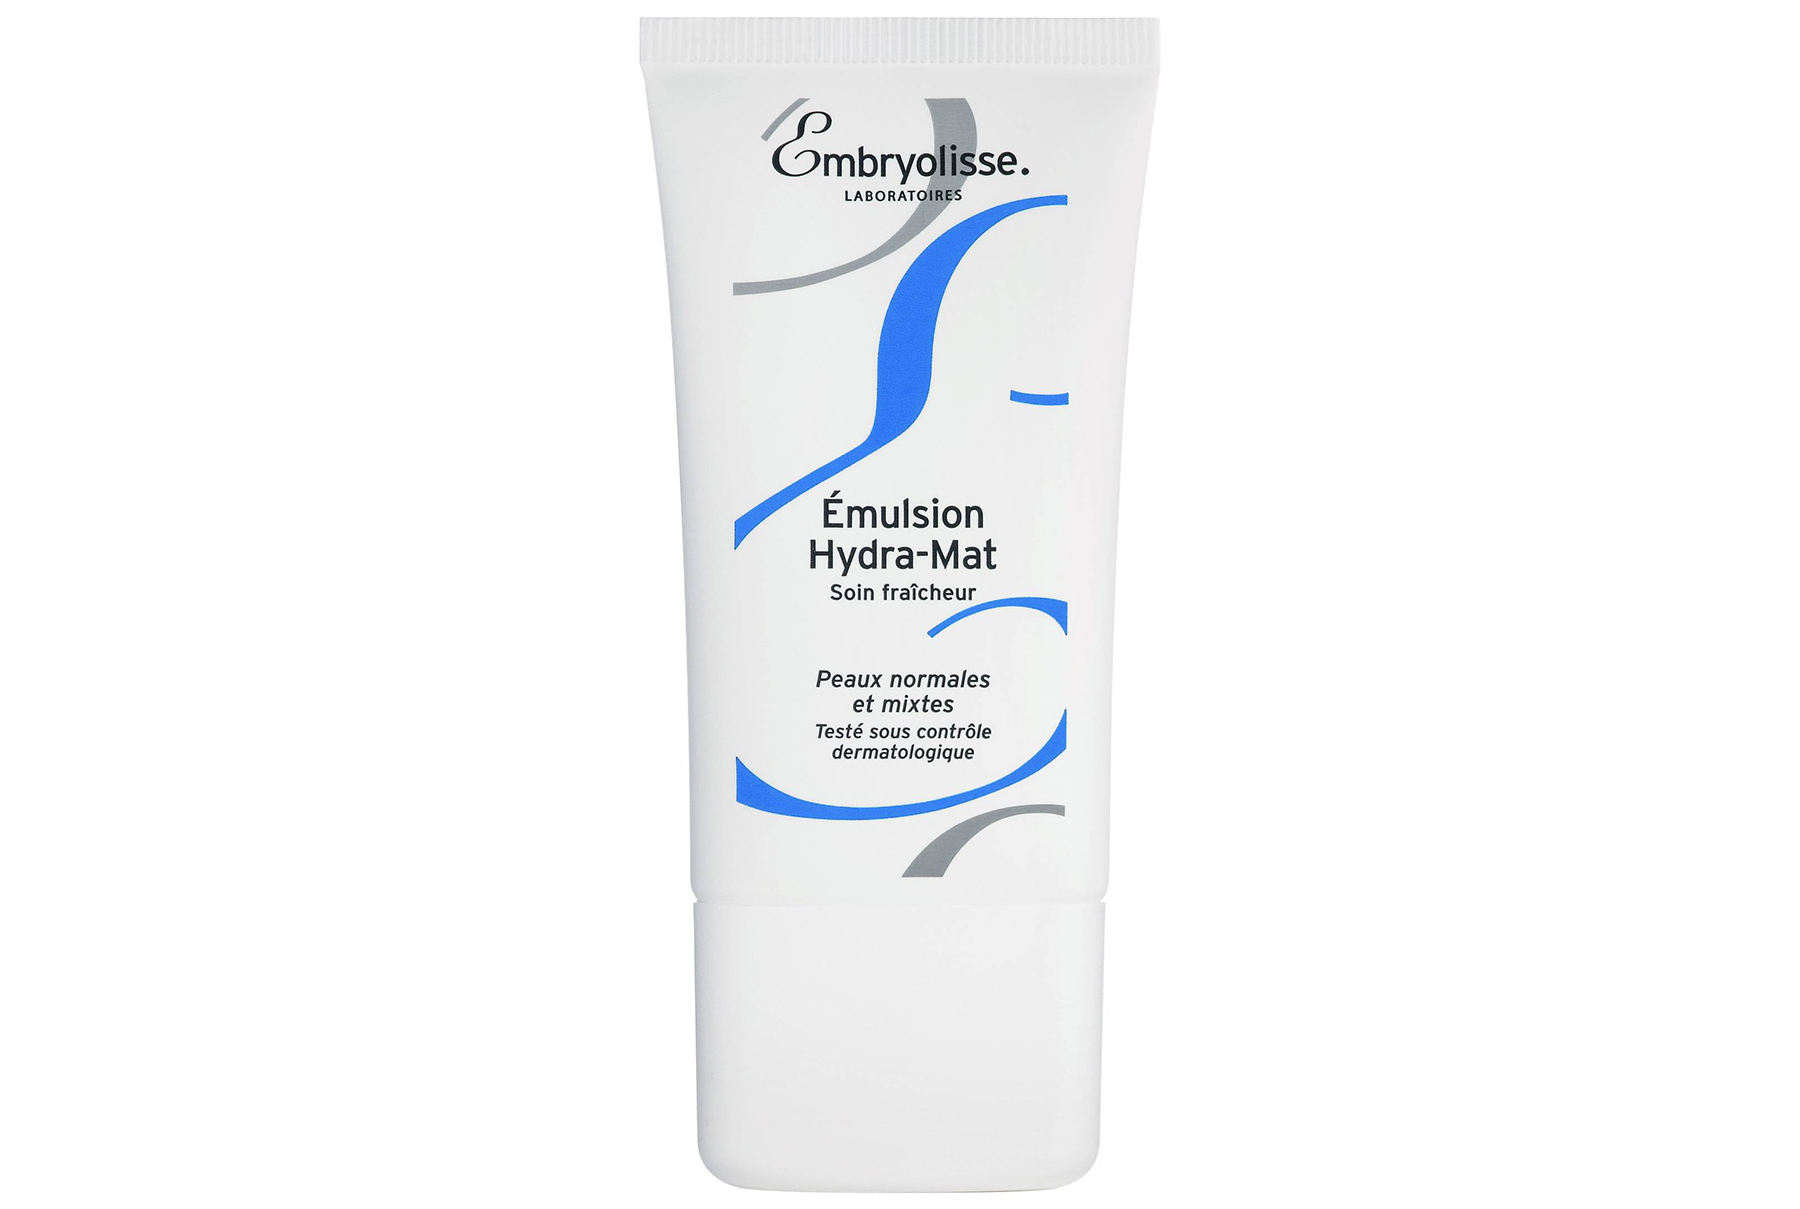 Embryolisse Hydra Mat Emulsion